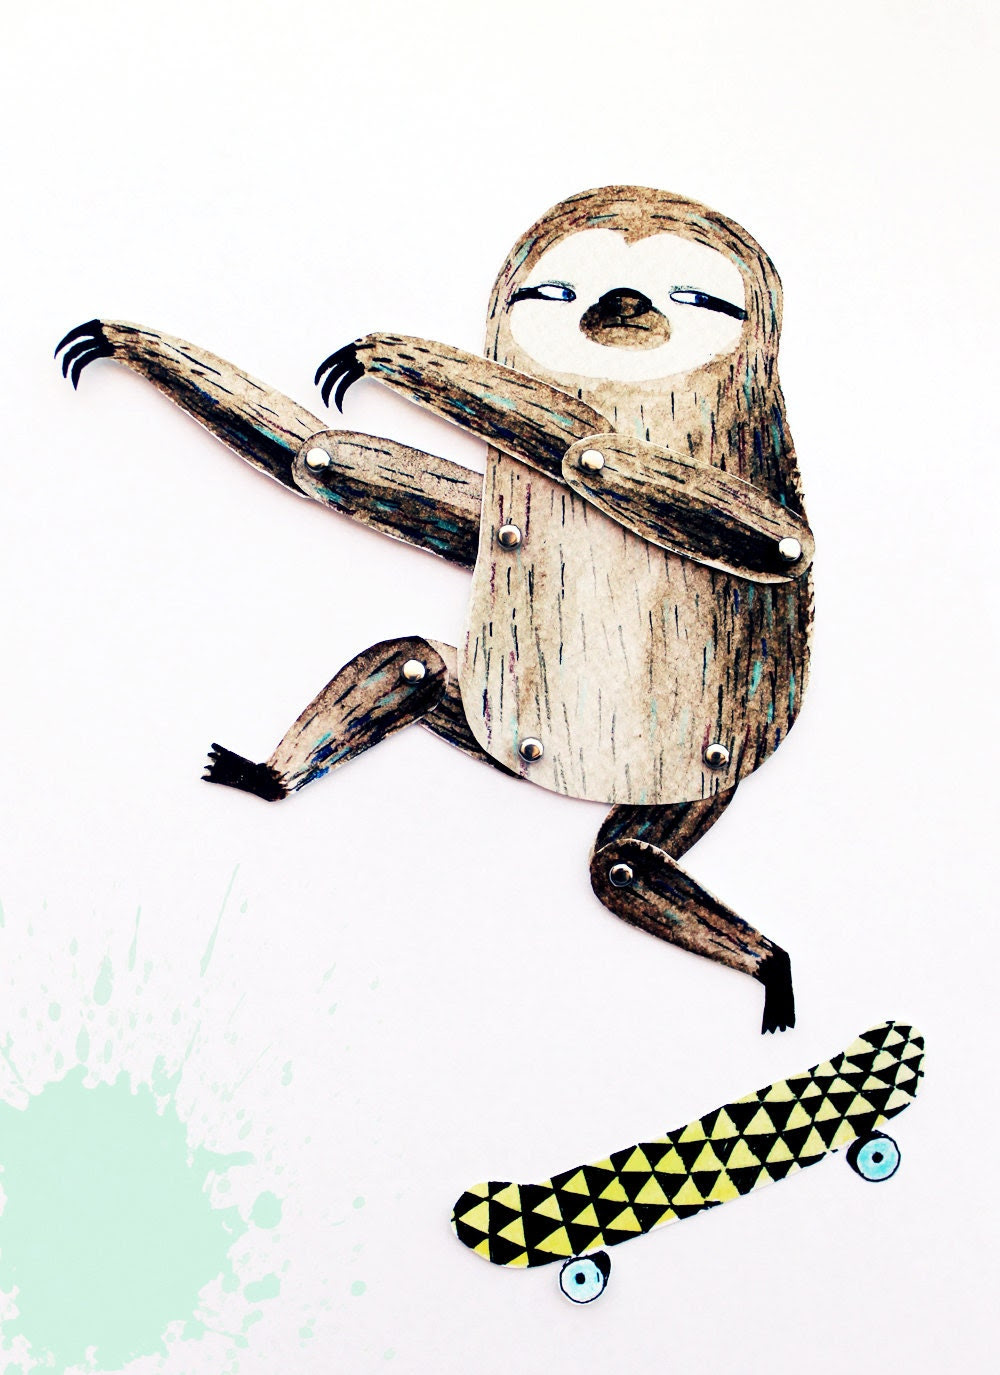 Articulated paper doll - Surfing skating sloth - DIY print set - lukaluka